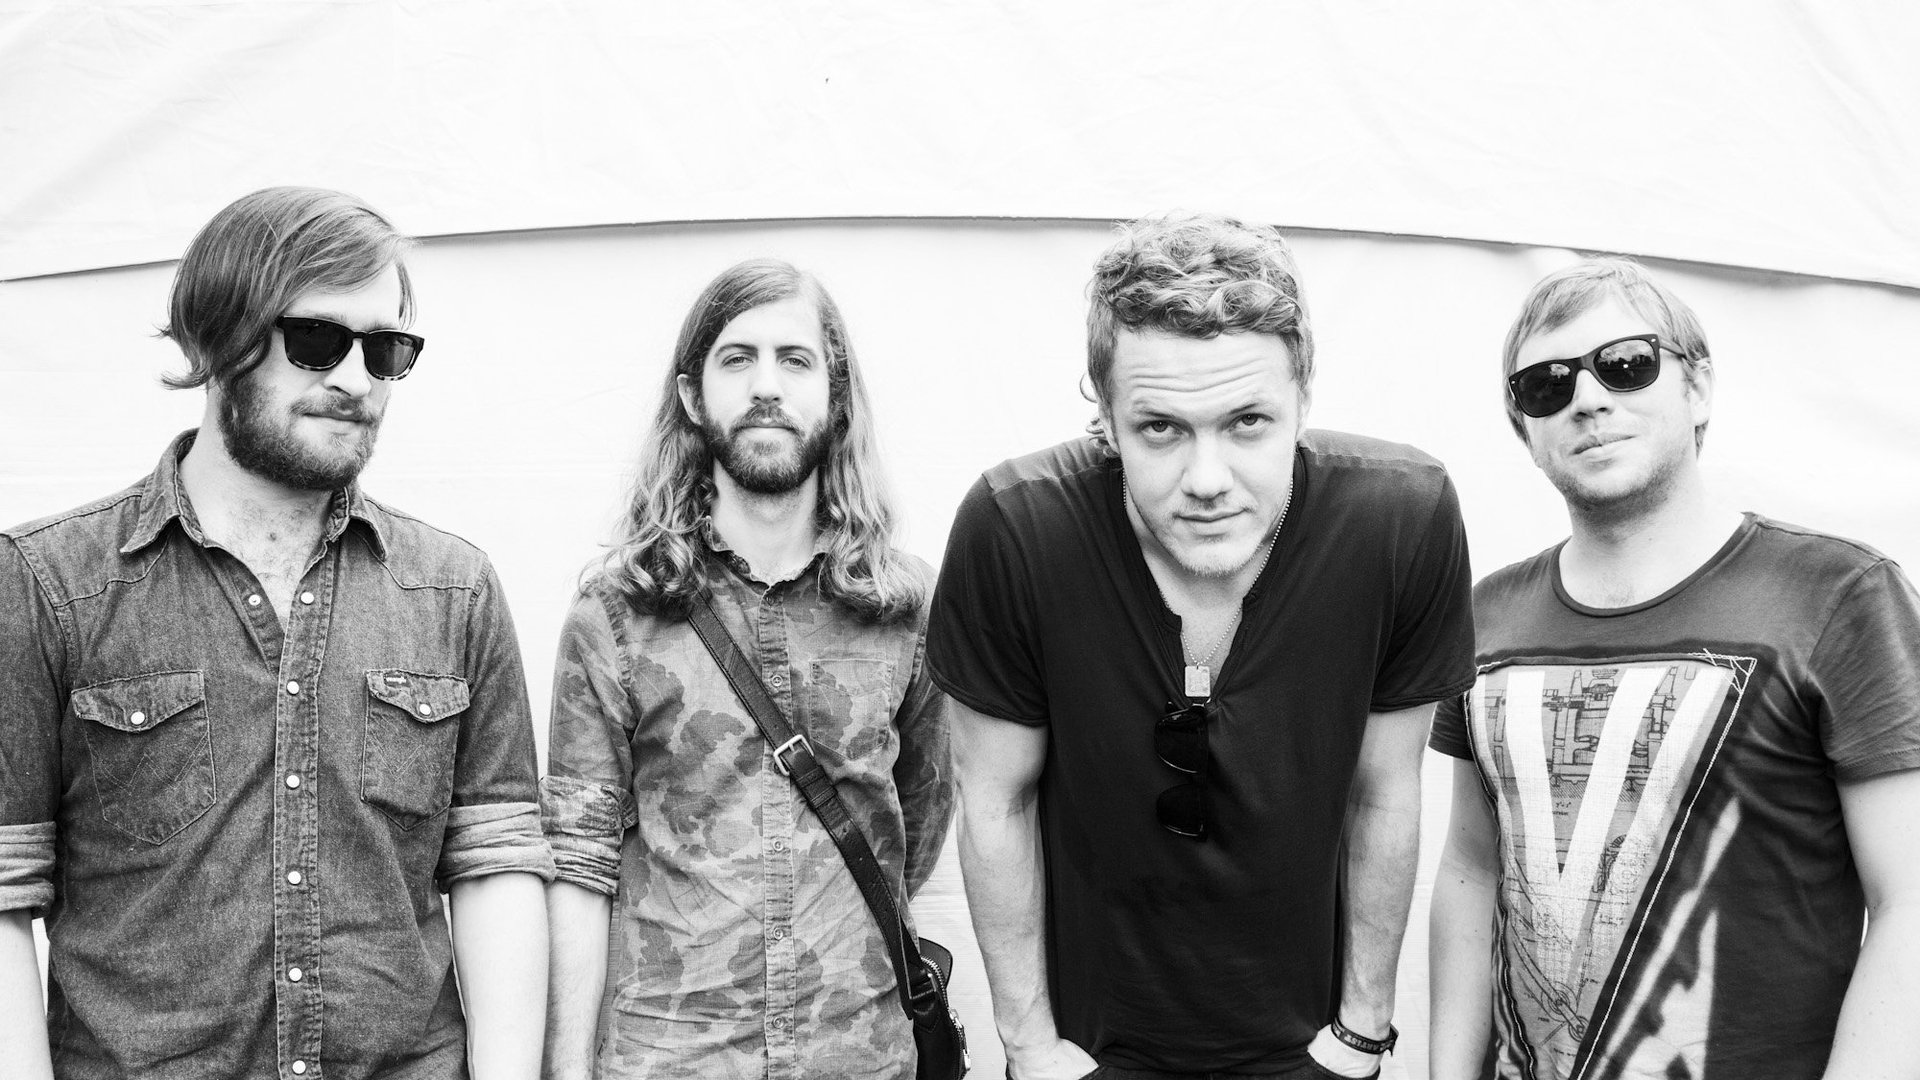 Awesome Imagine Dragons Free Wallpaper Id324306 For Full Hd Computer